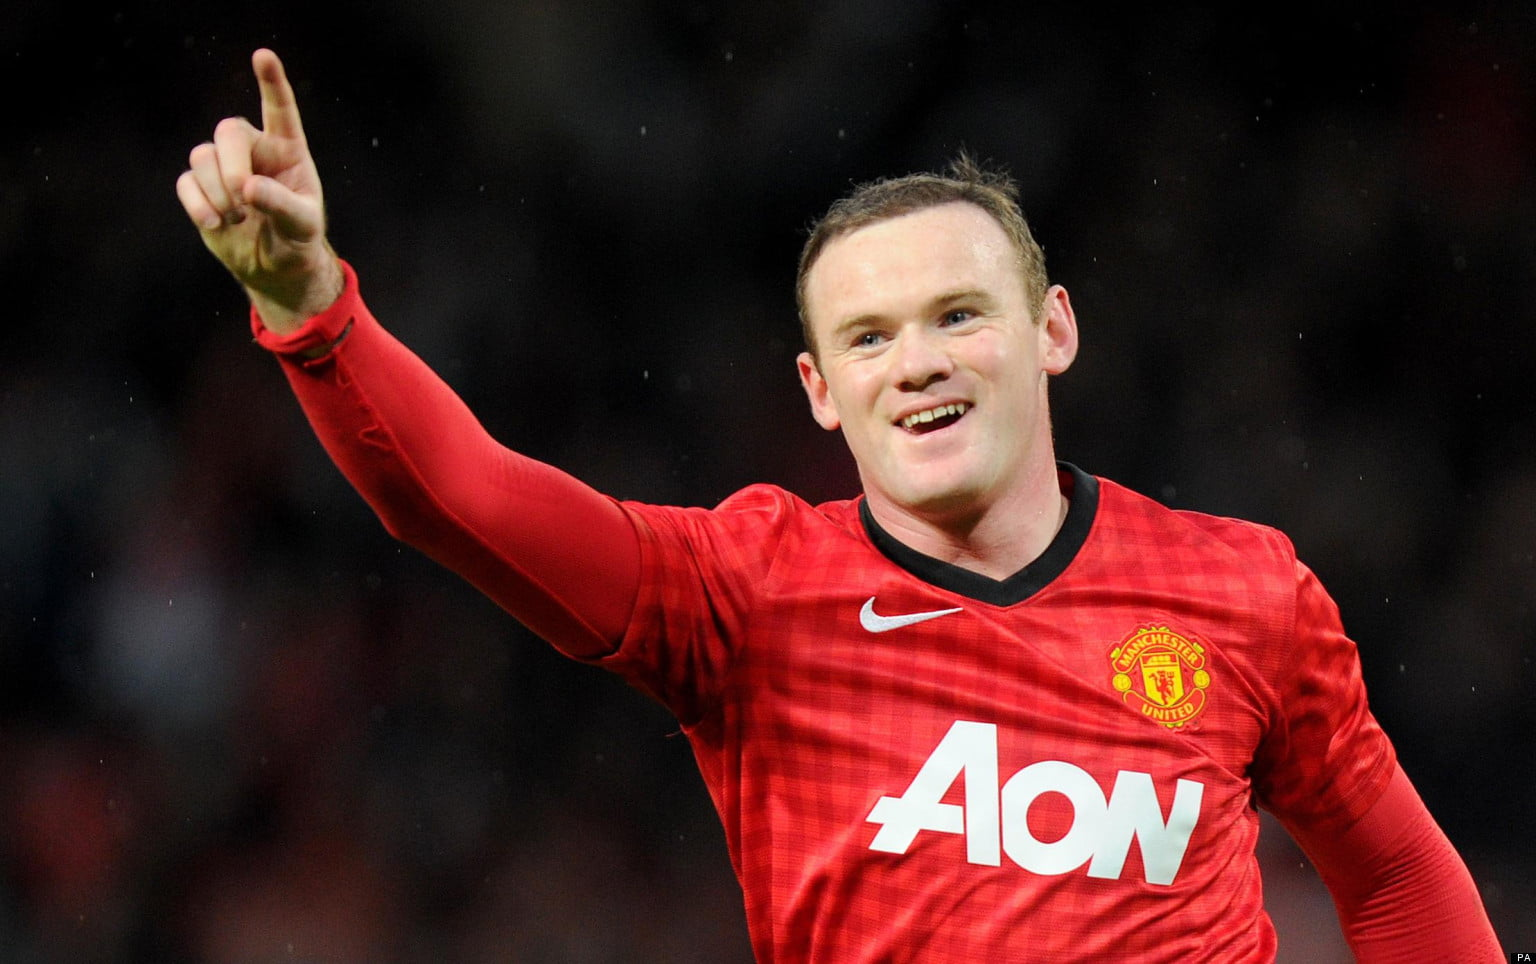 Manchester United's Wayne Rooney celebrates scoring during the Barclays Premier League match at Old Trafford, Manchester.